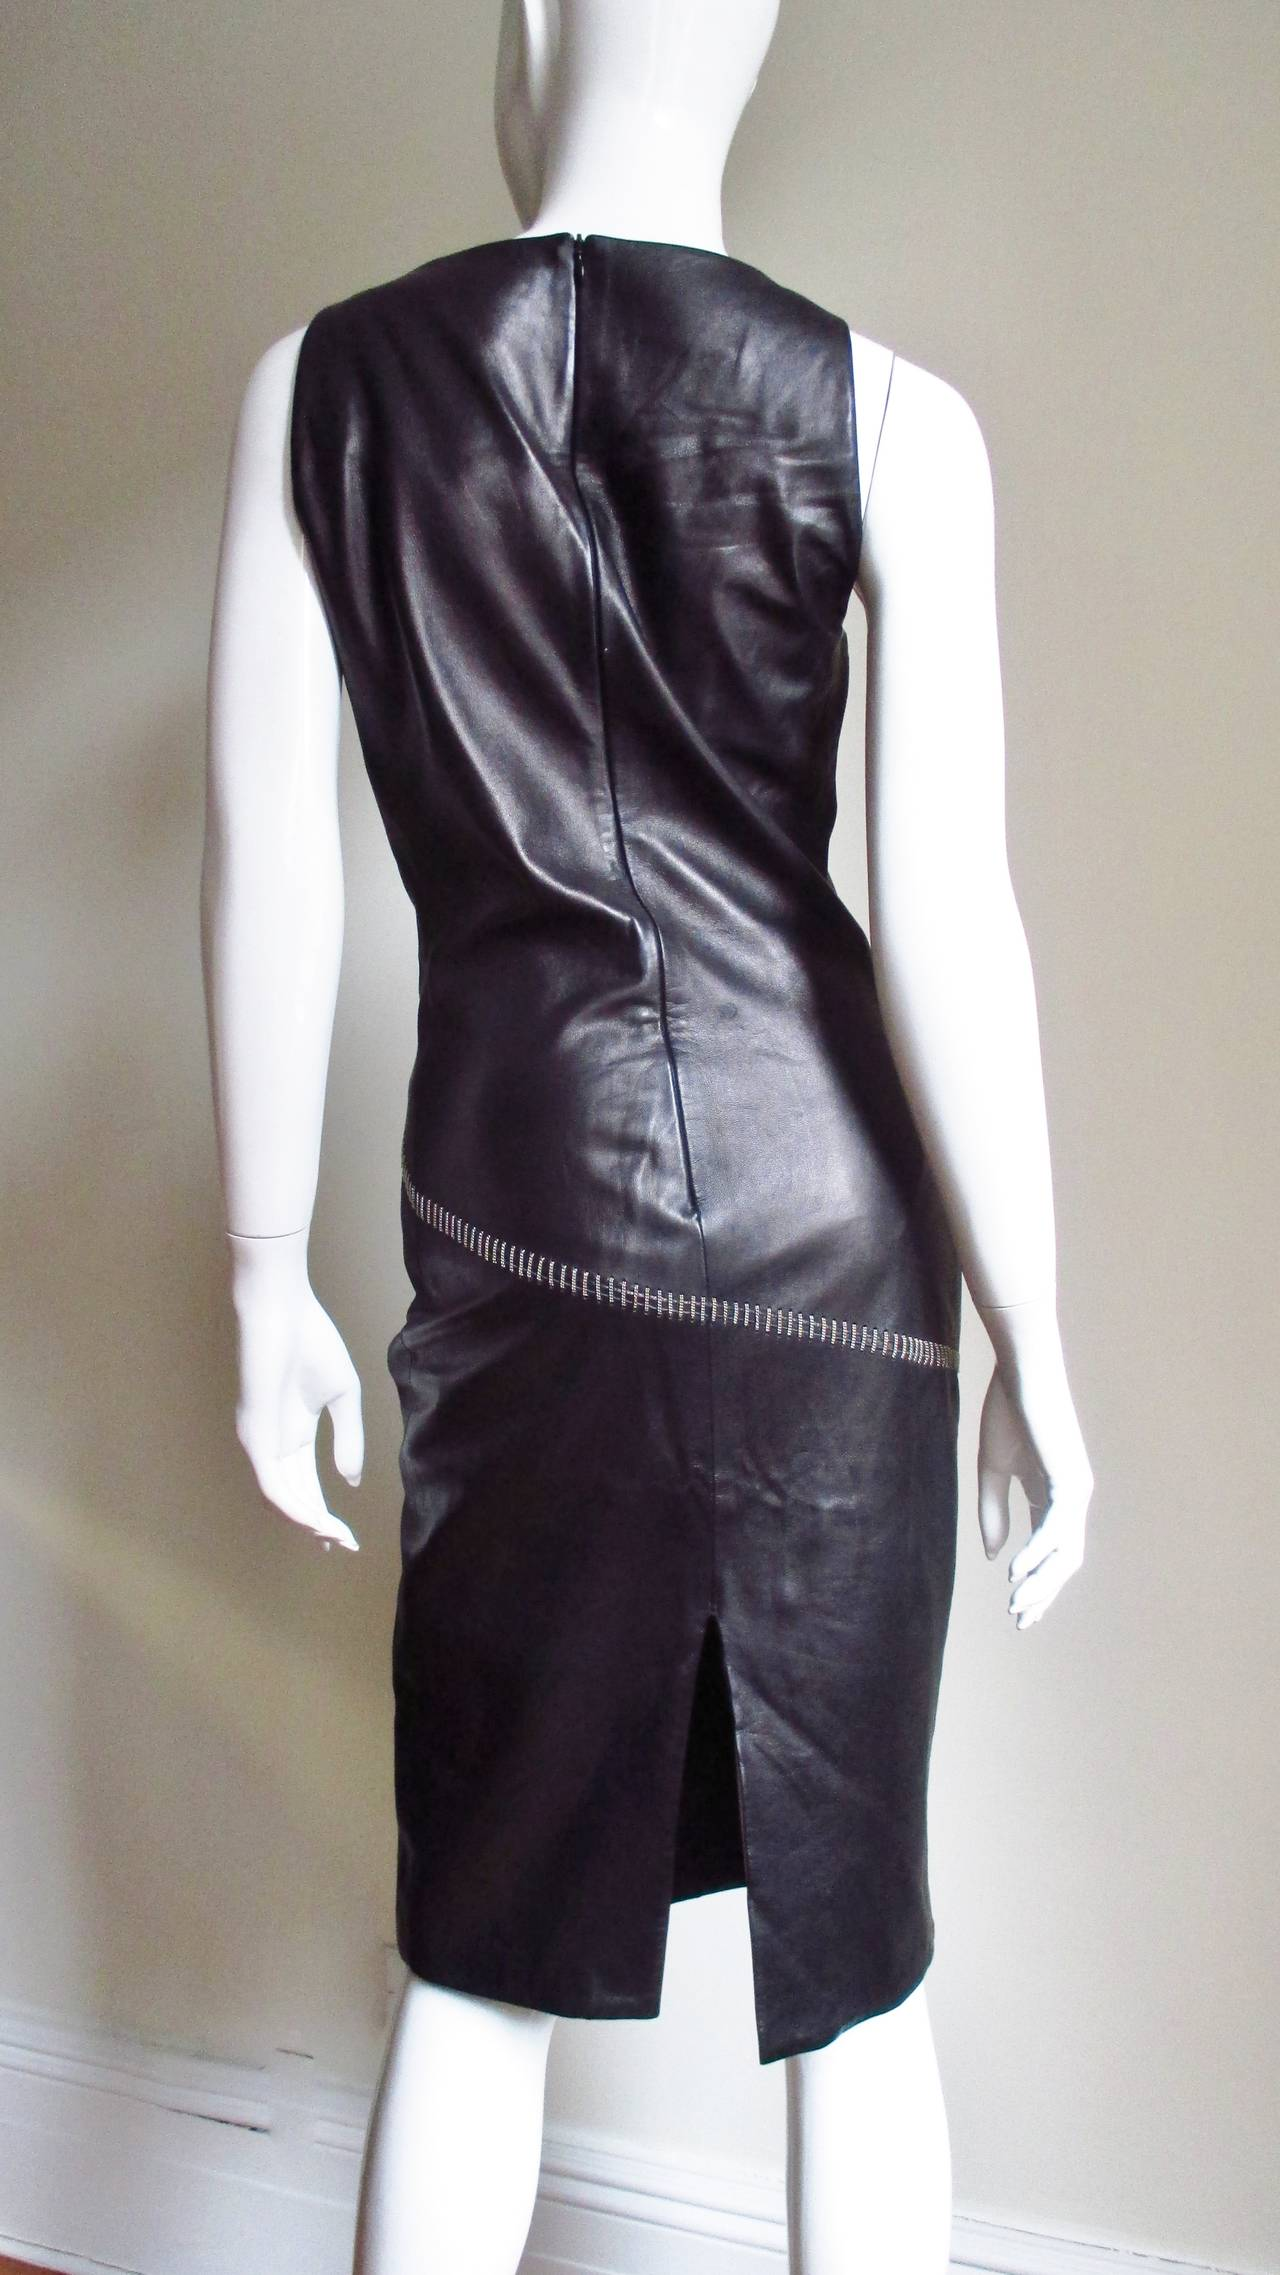 Gianni Versace Leather Dress With Chains 5